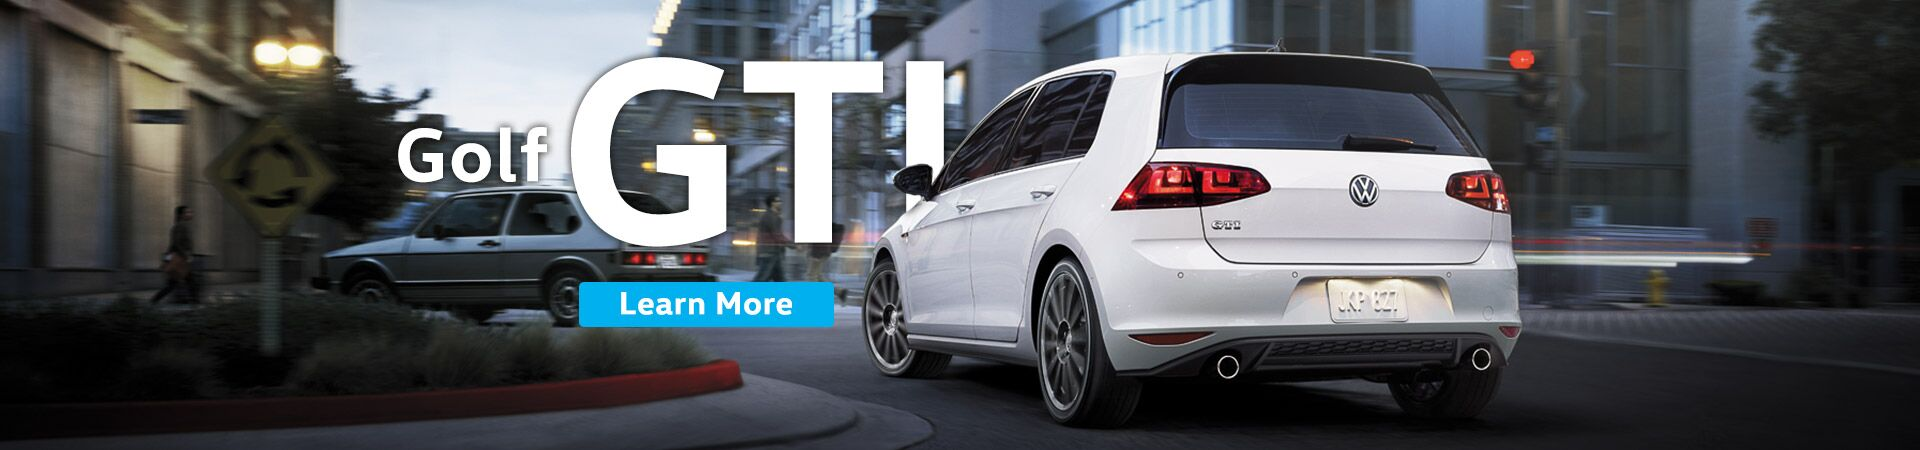 Stevens Creek Volkswagen Serving San Jose Sunnyvale And The Bay Area We Are The Used Truck